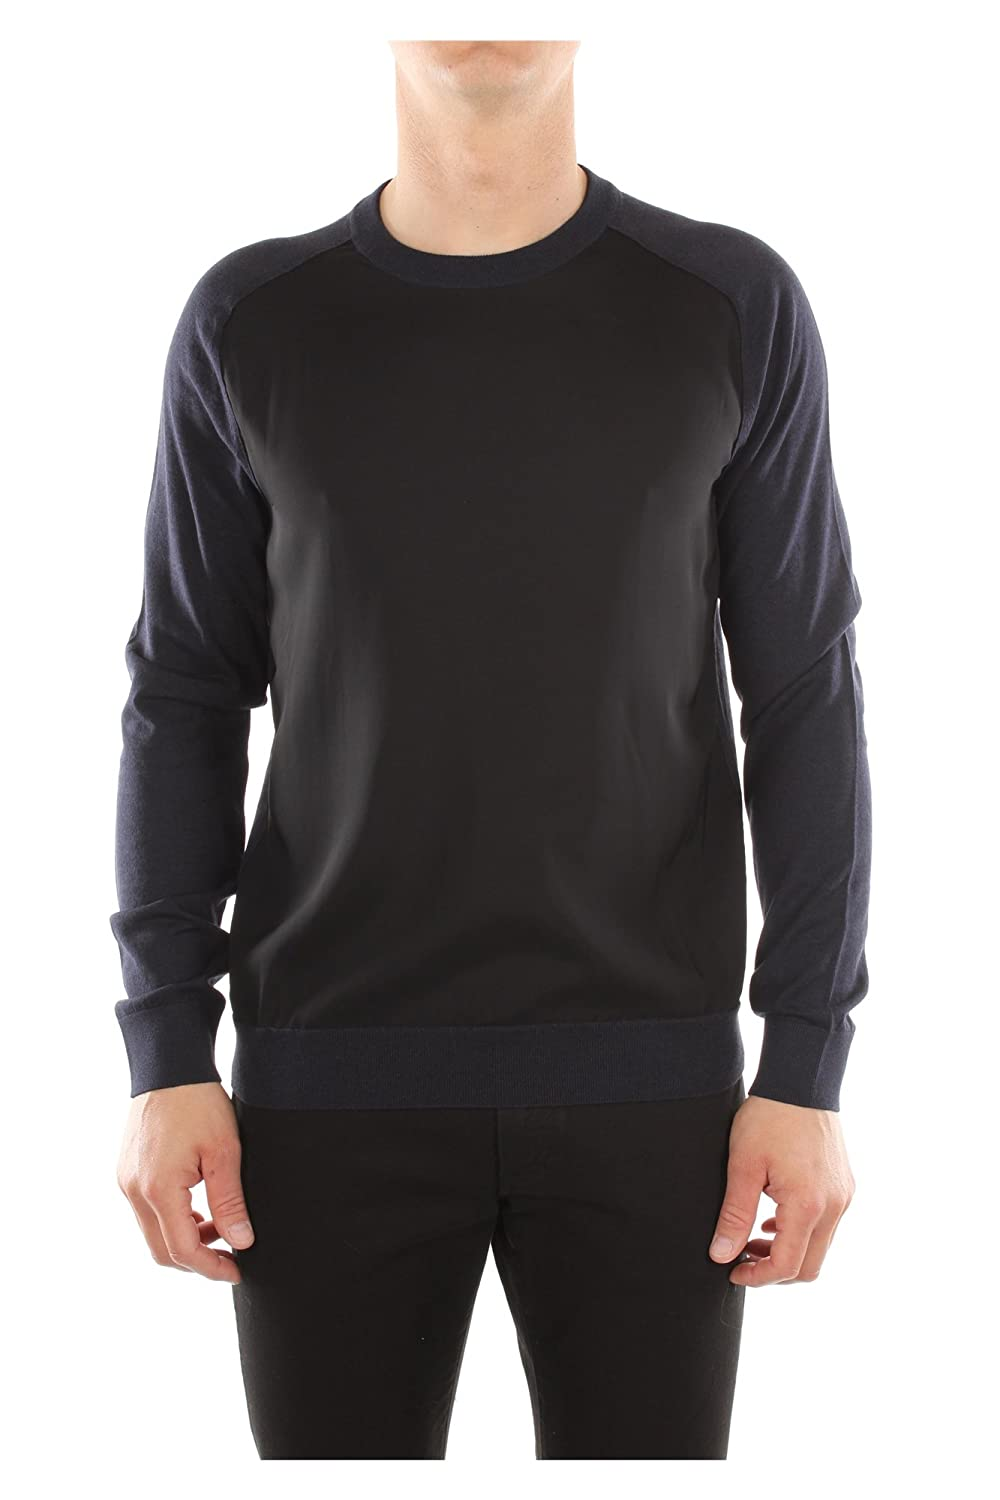 RMPO0026P1529 Lanvin Sweatshirts Men Cotton Blue